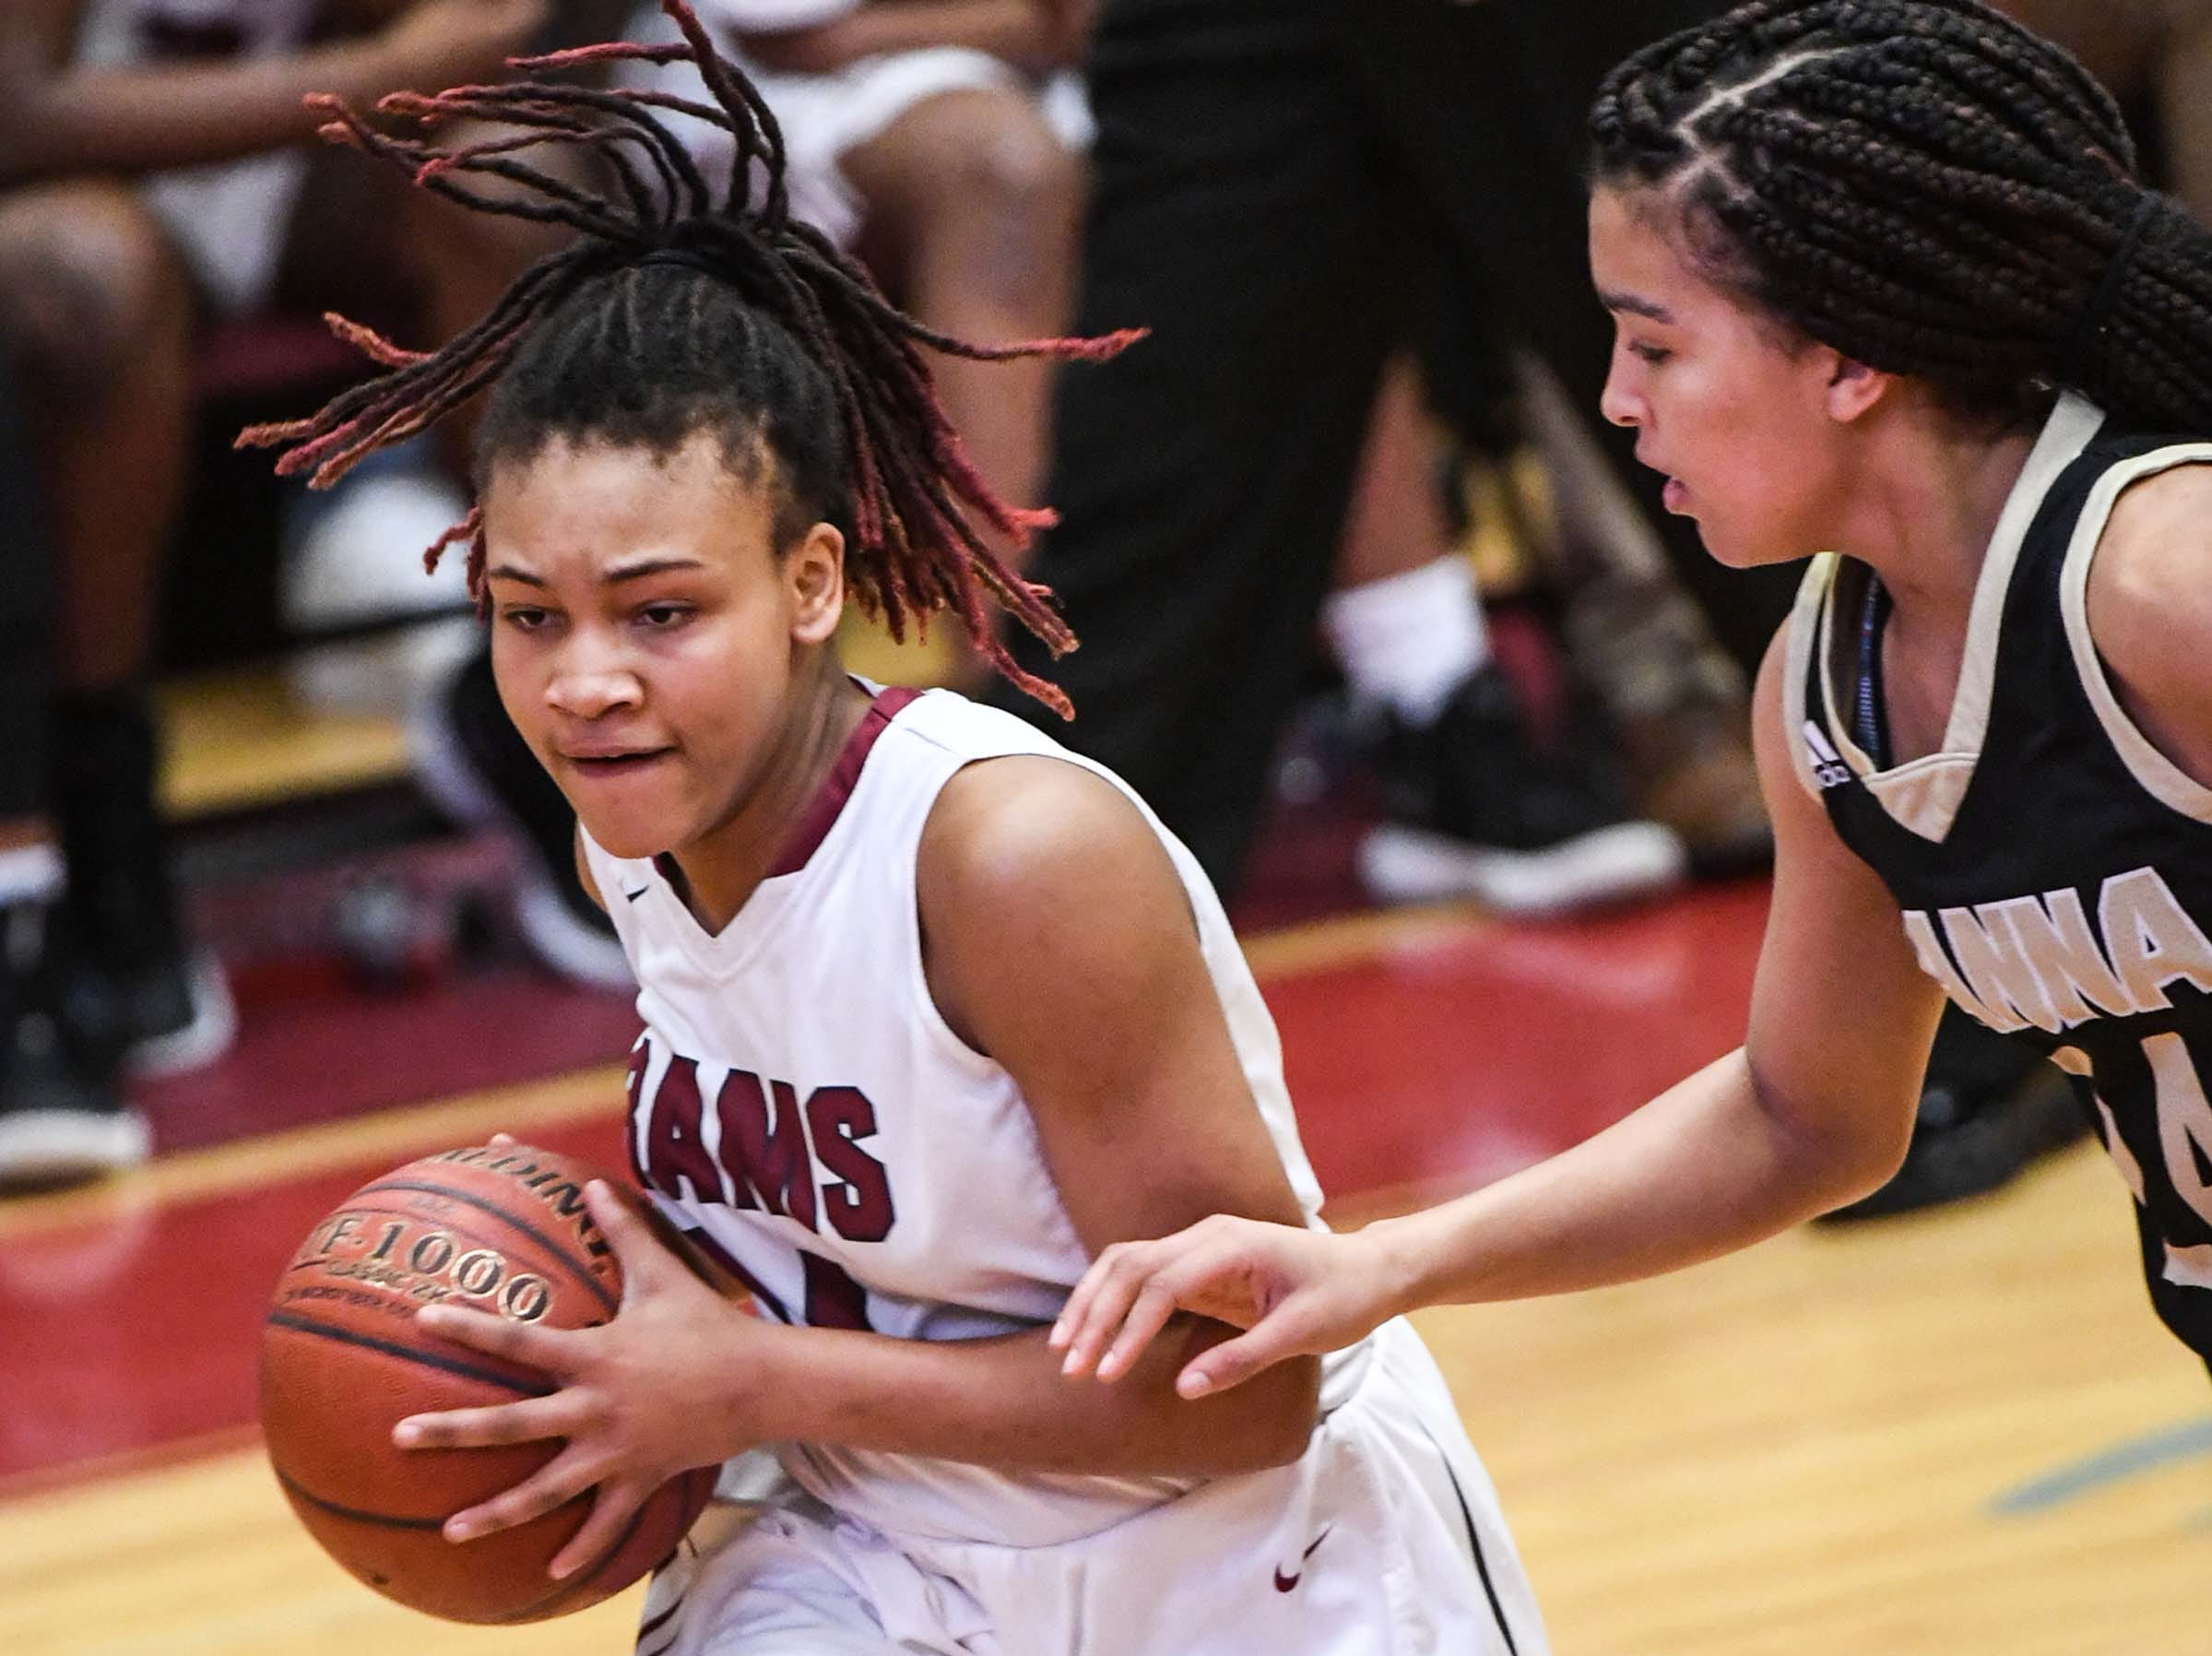 Westside junior Tatyana Lewis(14) dribbles near TL Hanna junior Maleia Bracone(24) during the fourth quarter at Westside High School in Anderson on Friday. Westside won 54-46.